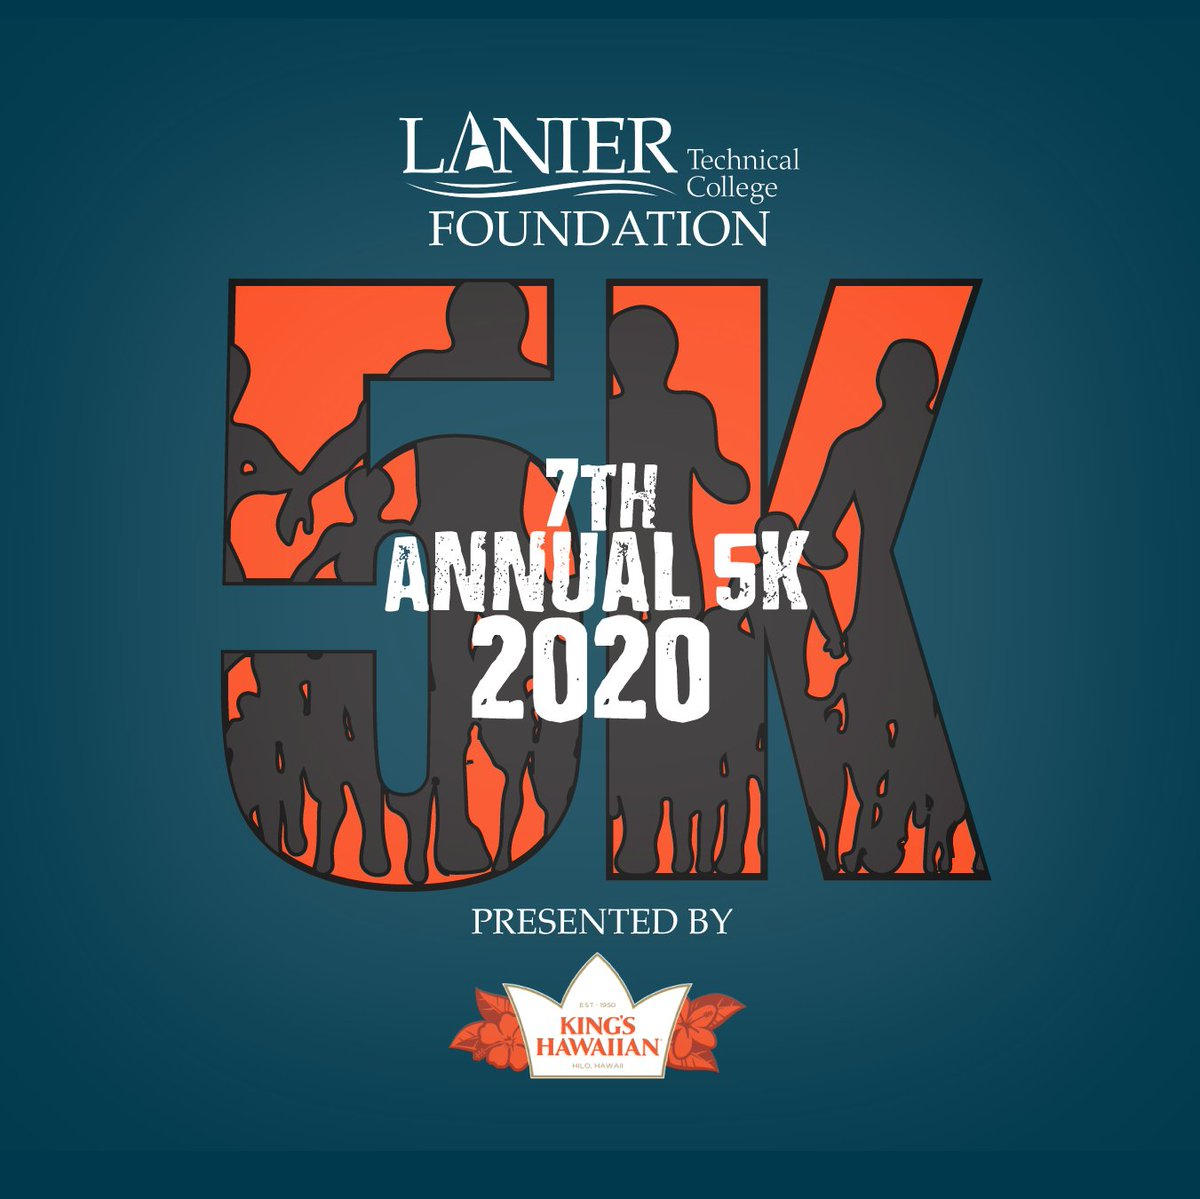 SAVE THE DATE! April 18th, 2020! 7th Annual 5k & 1-Mile Fun Run at #Laniertech's Hall Campus.1-Mile Fun Run at 9:30 AM; 5k at 10 AM. Presented by King's Hawaiian. Proceeds benefit #Laniertech Foundation scholarships.  Register: https://www.laniertechfoundation.org/events/5k   #kingshawaiian⁣ #tcsg⁣pic.twitter.com/VcJgEW4Zqo